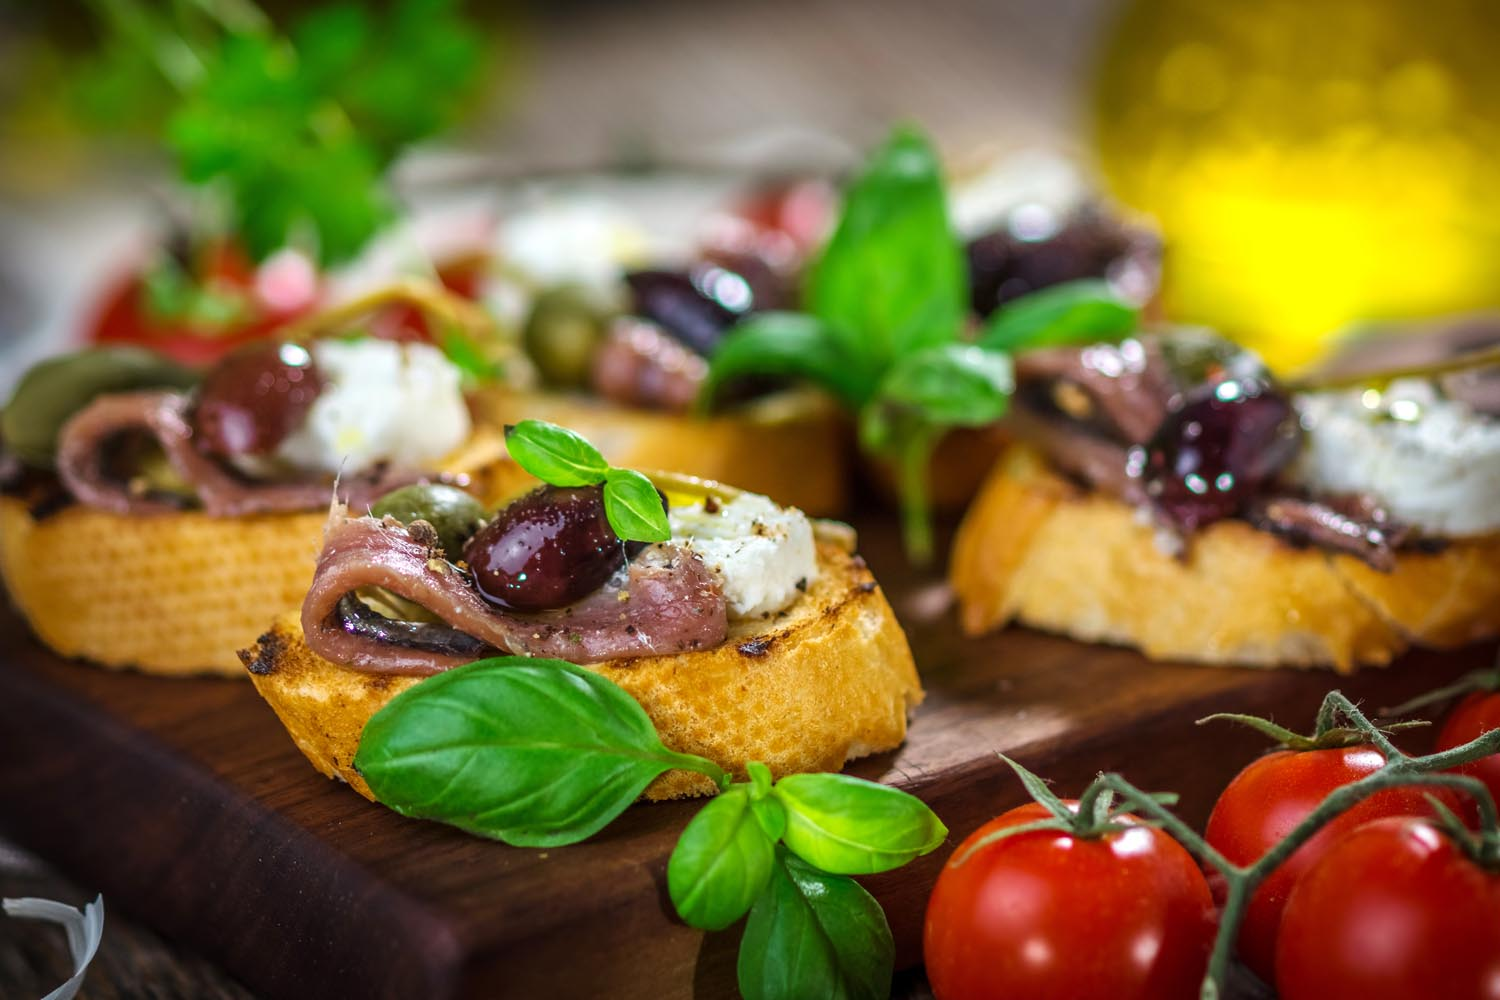 Fresh Red Wine - Perfect for Appetizers